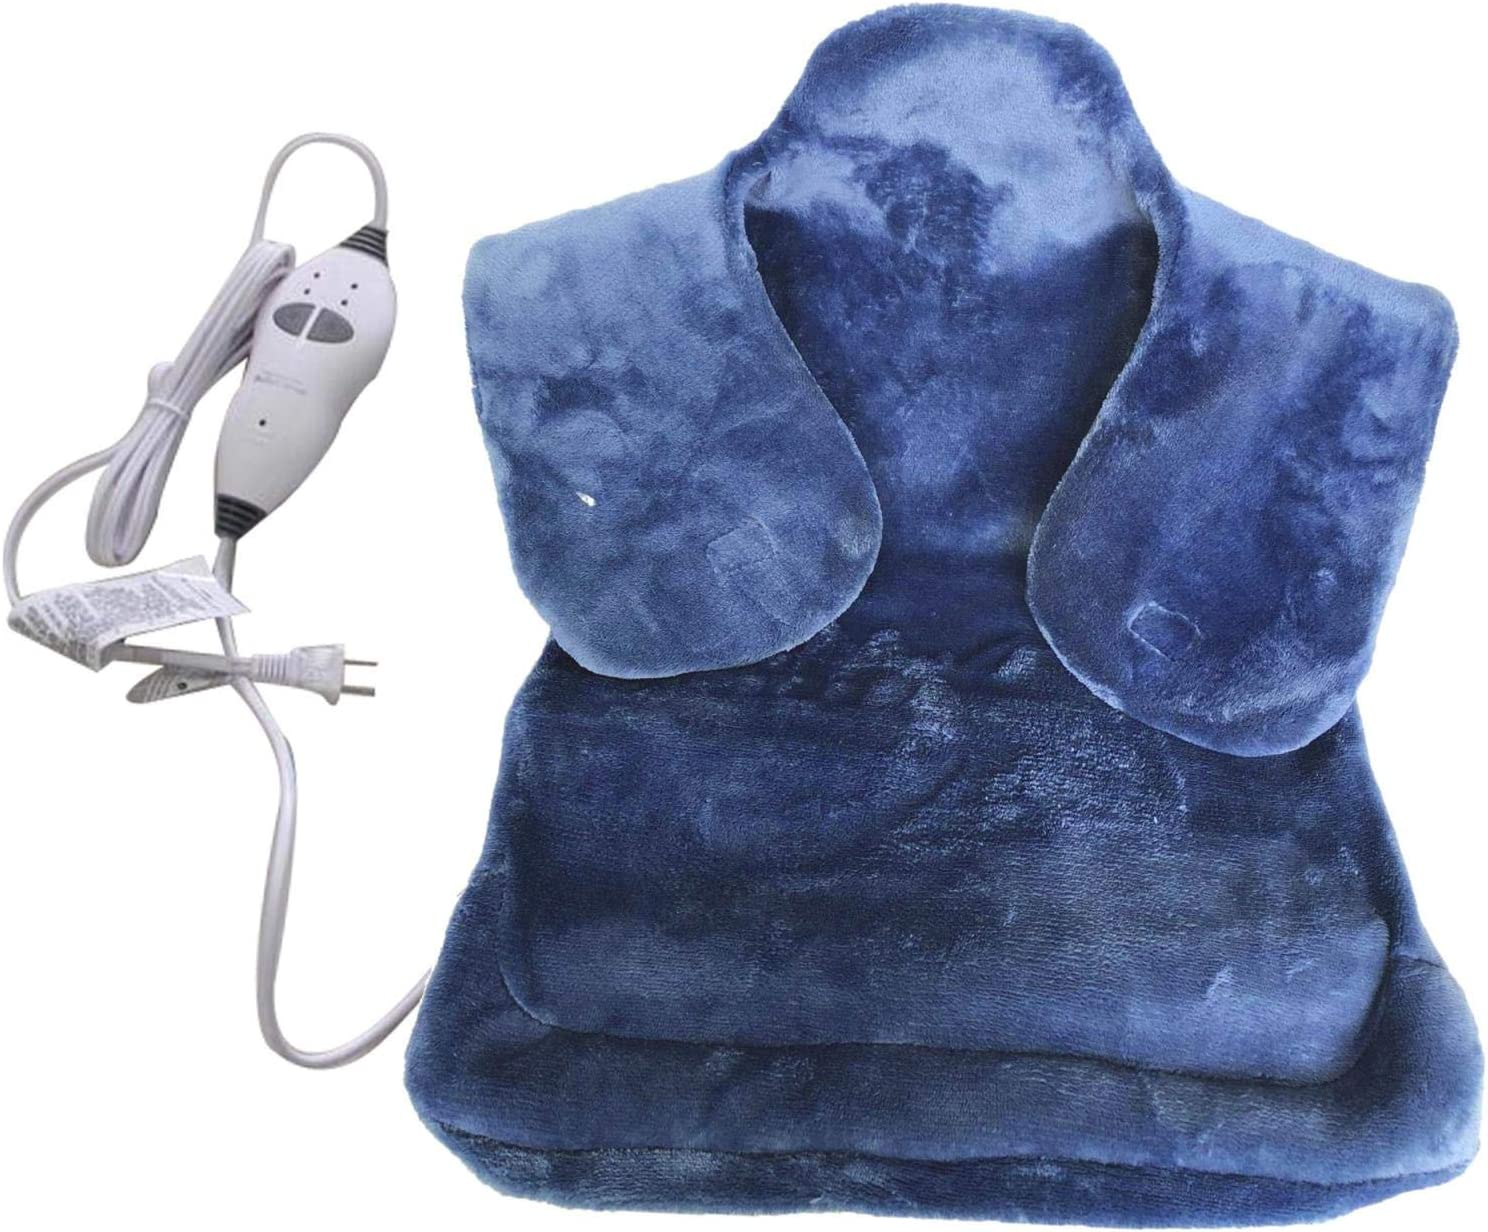 F Fityle Large Heating Pads Inventory Large discharge sale cleanup selling sale for Pain 24''x32'' Back Hea Electric